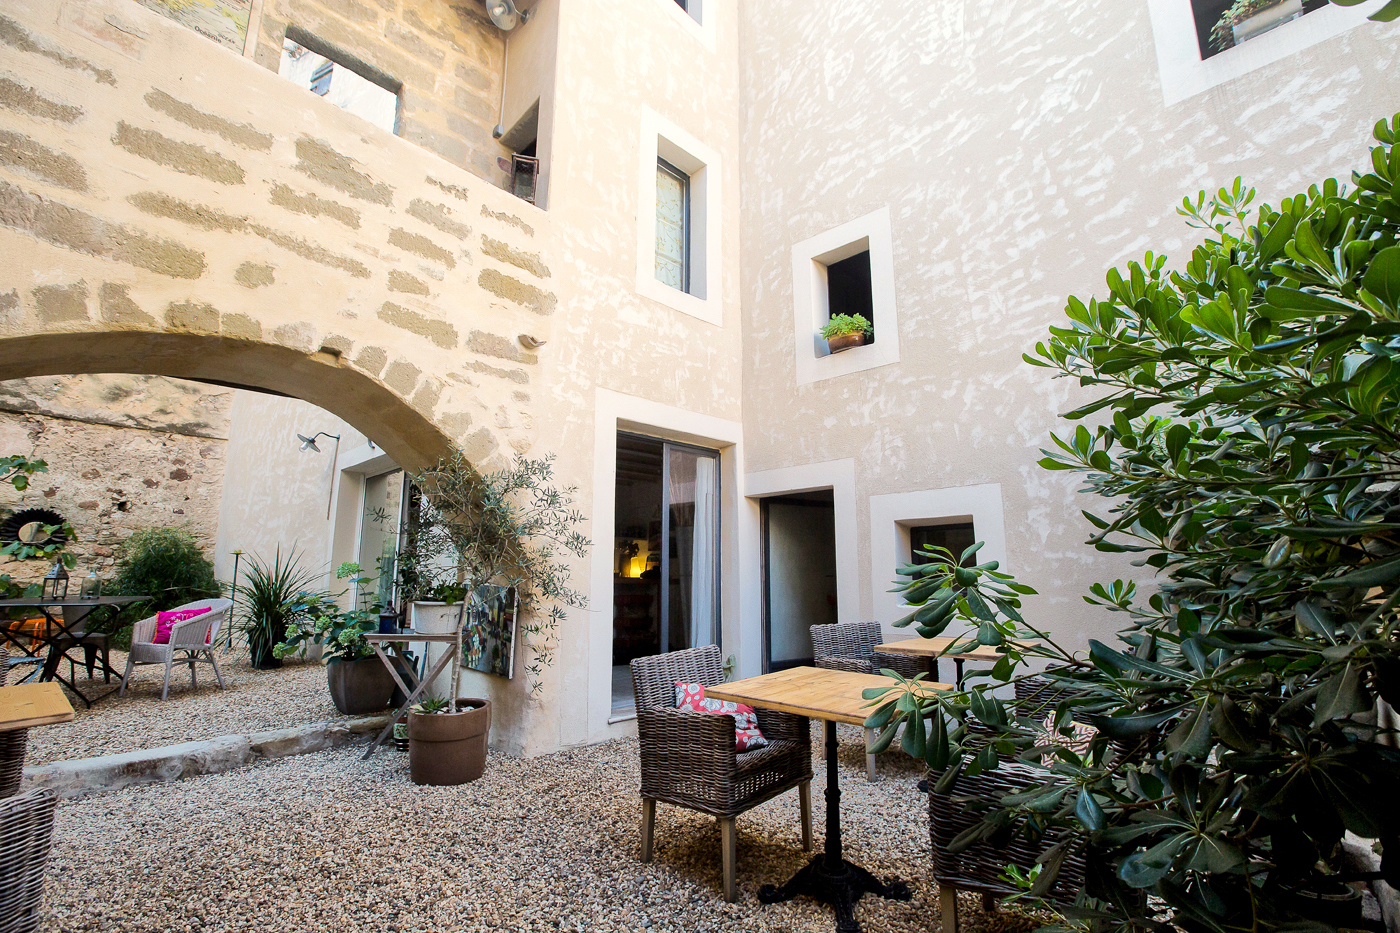 2166 : Uzès, at 5 minutes, character property, 325 m2, close to all amenities, lively village